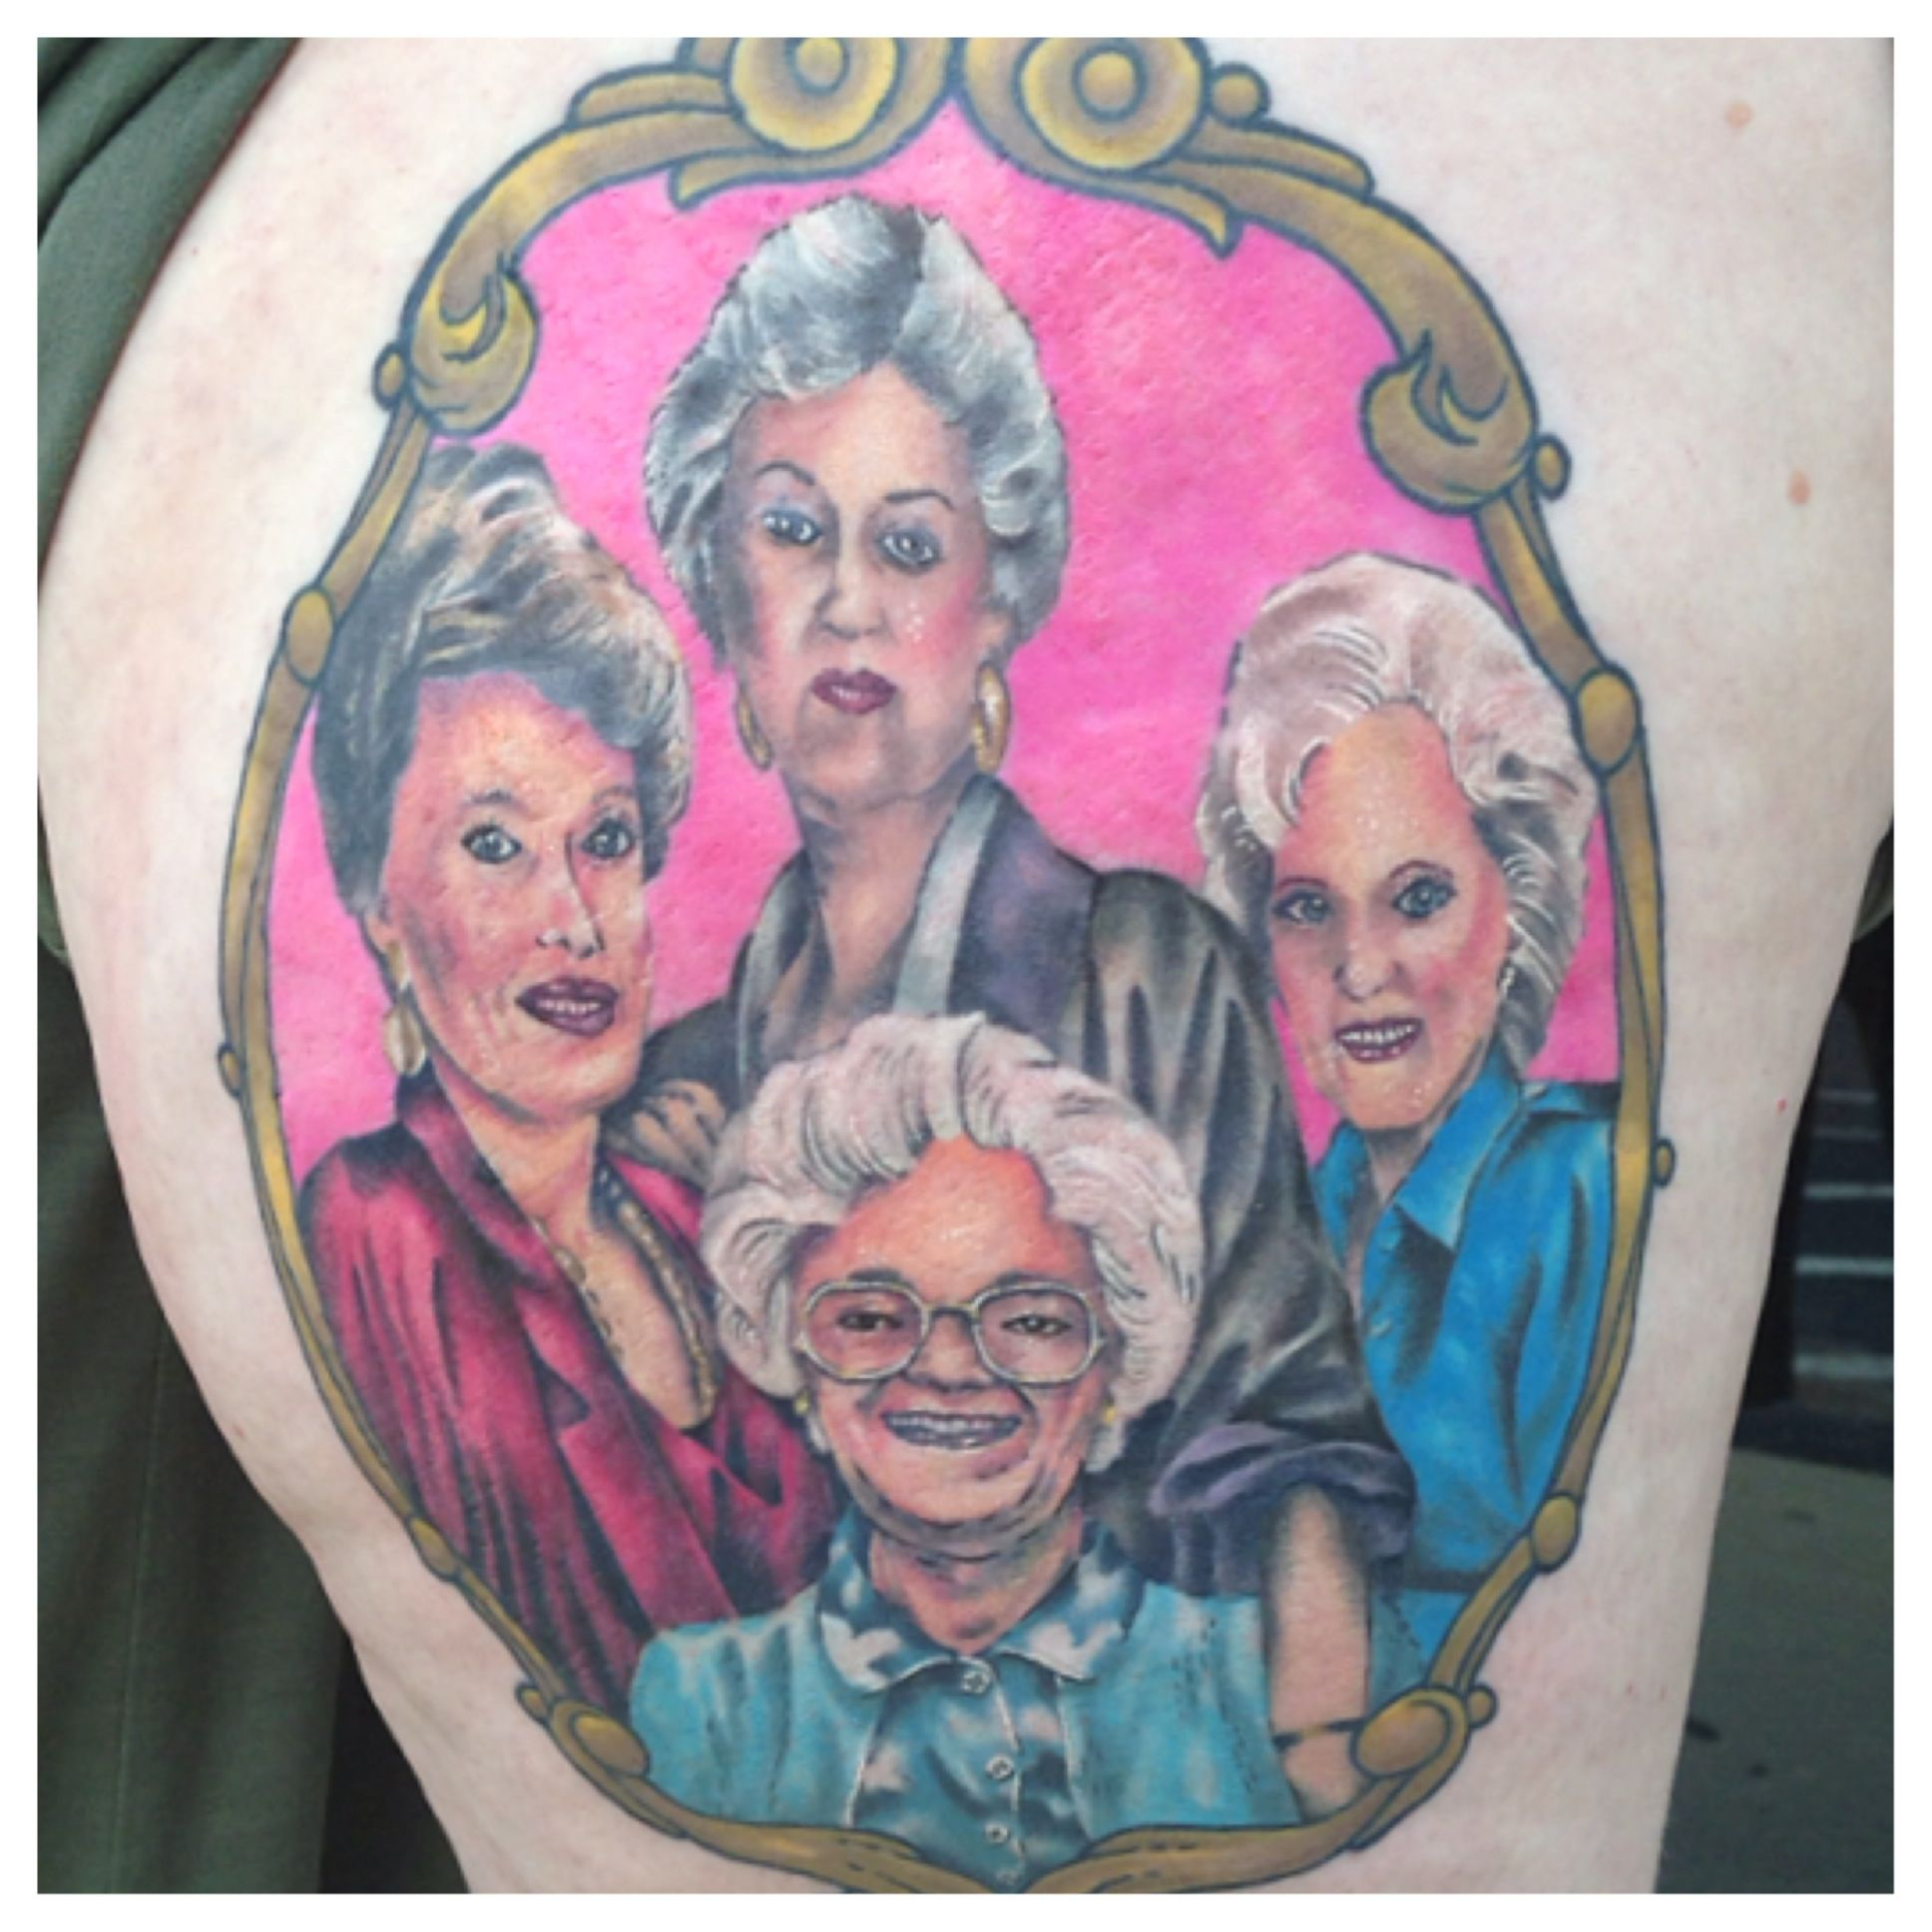 Golden Girls Tattoo